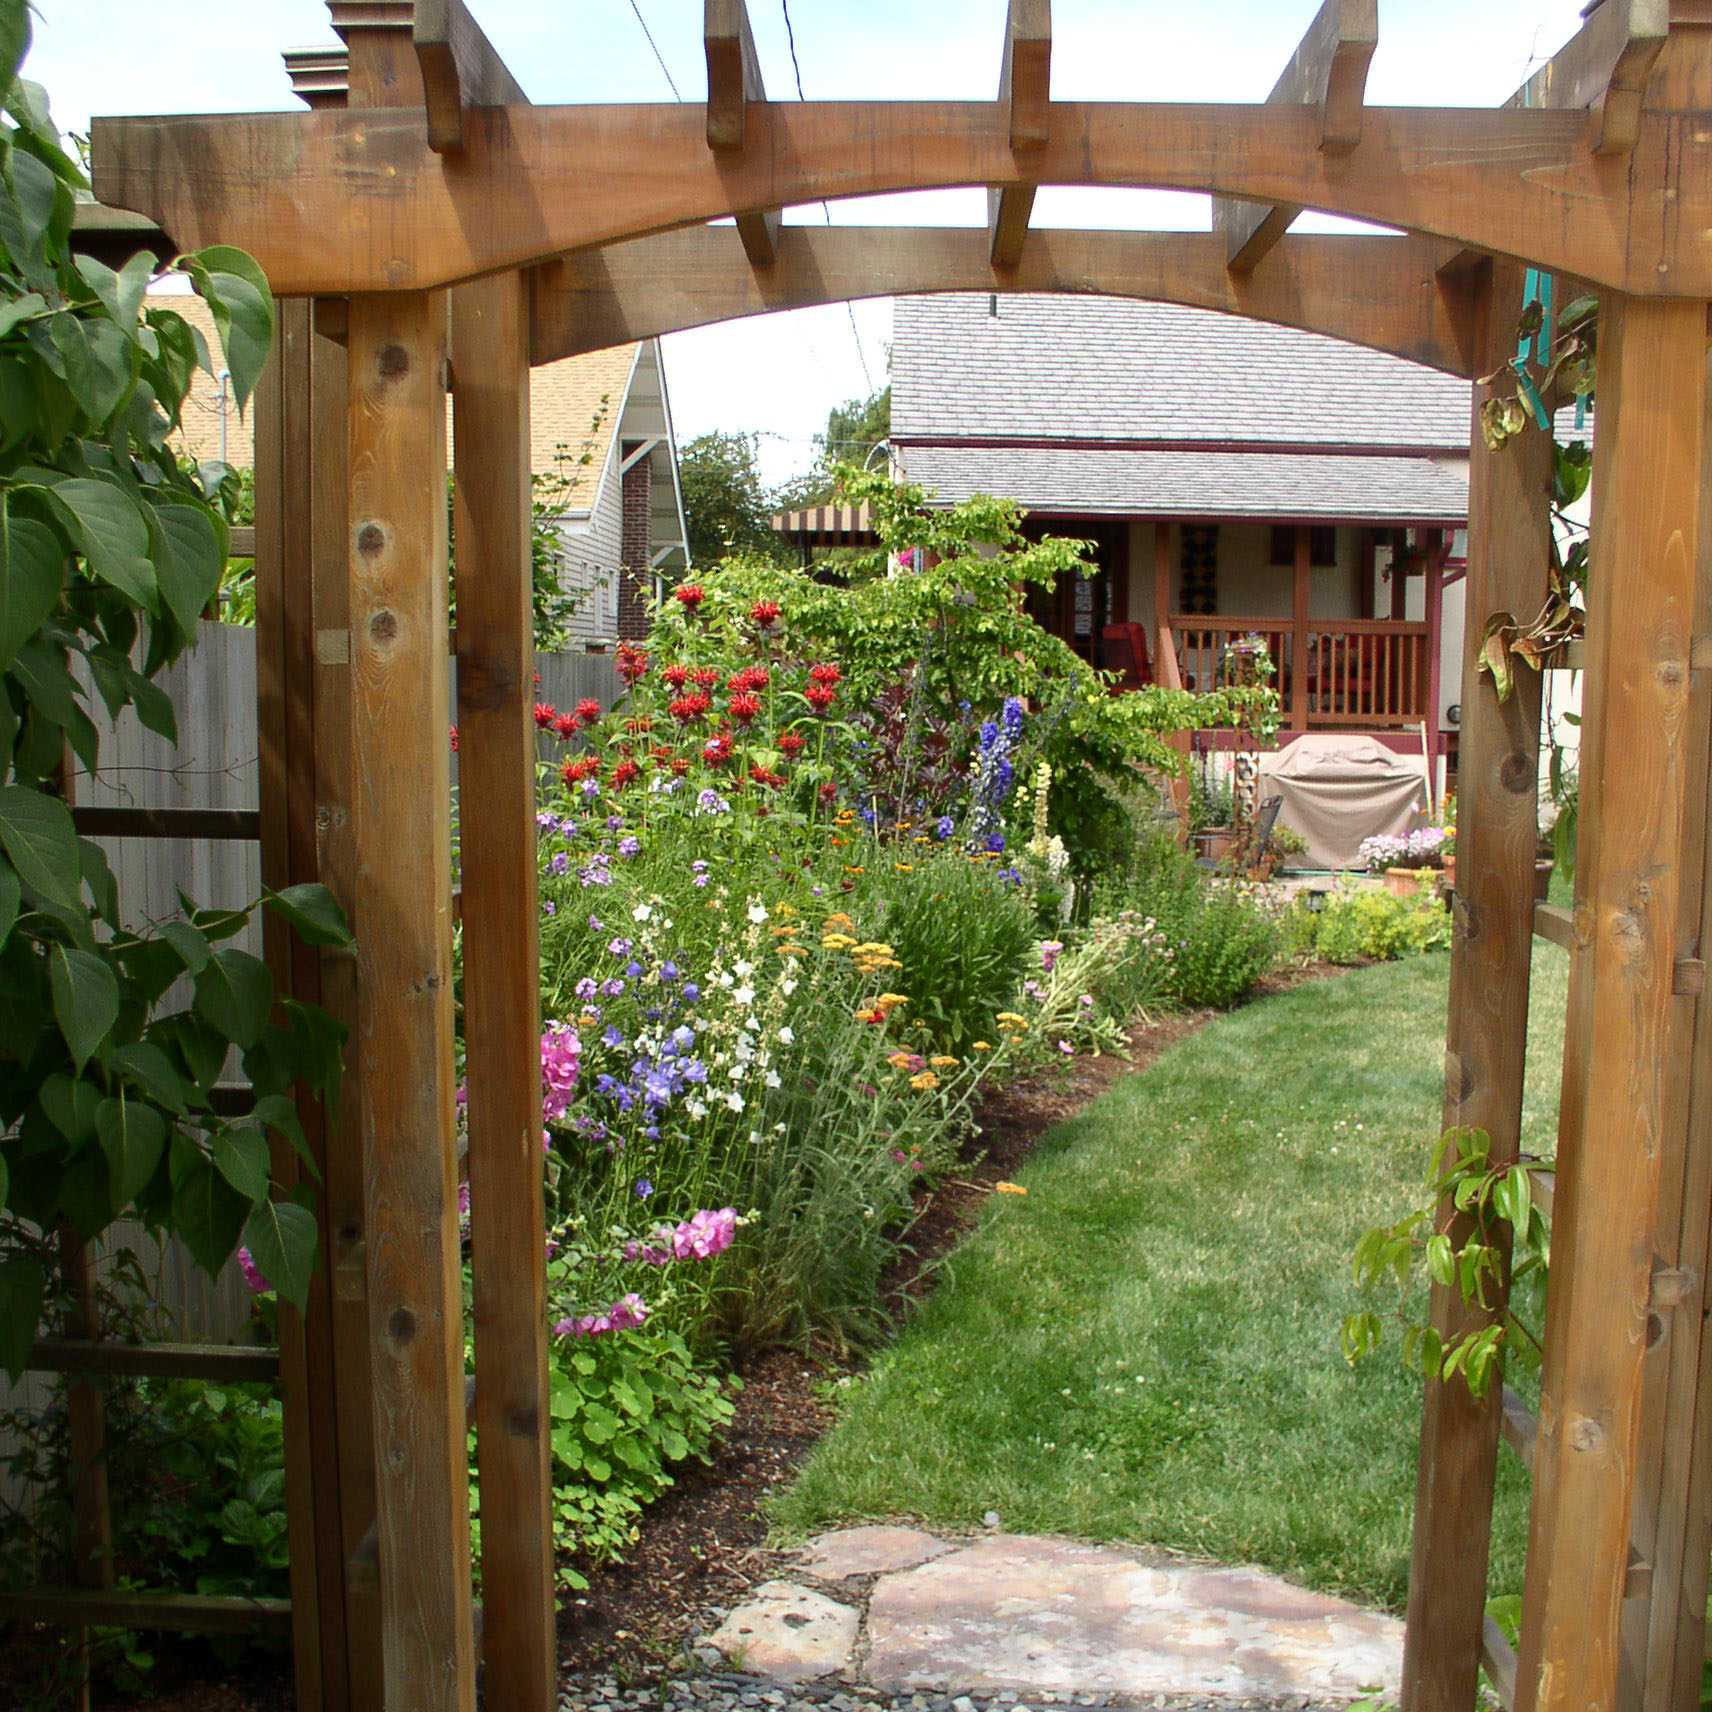 Wooden arbor entryway into a flower garden